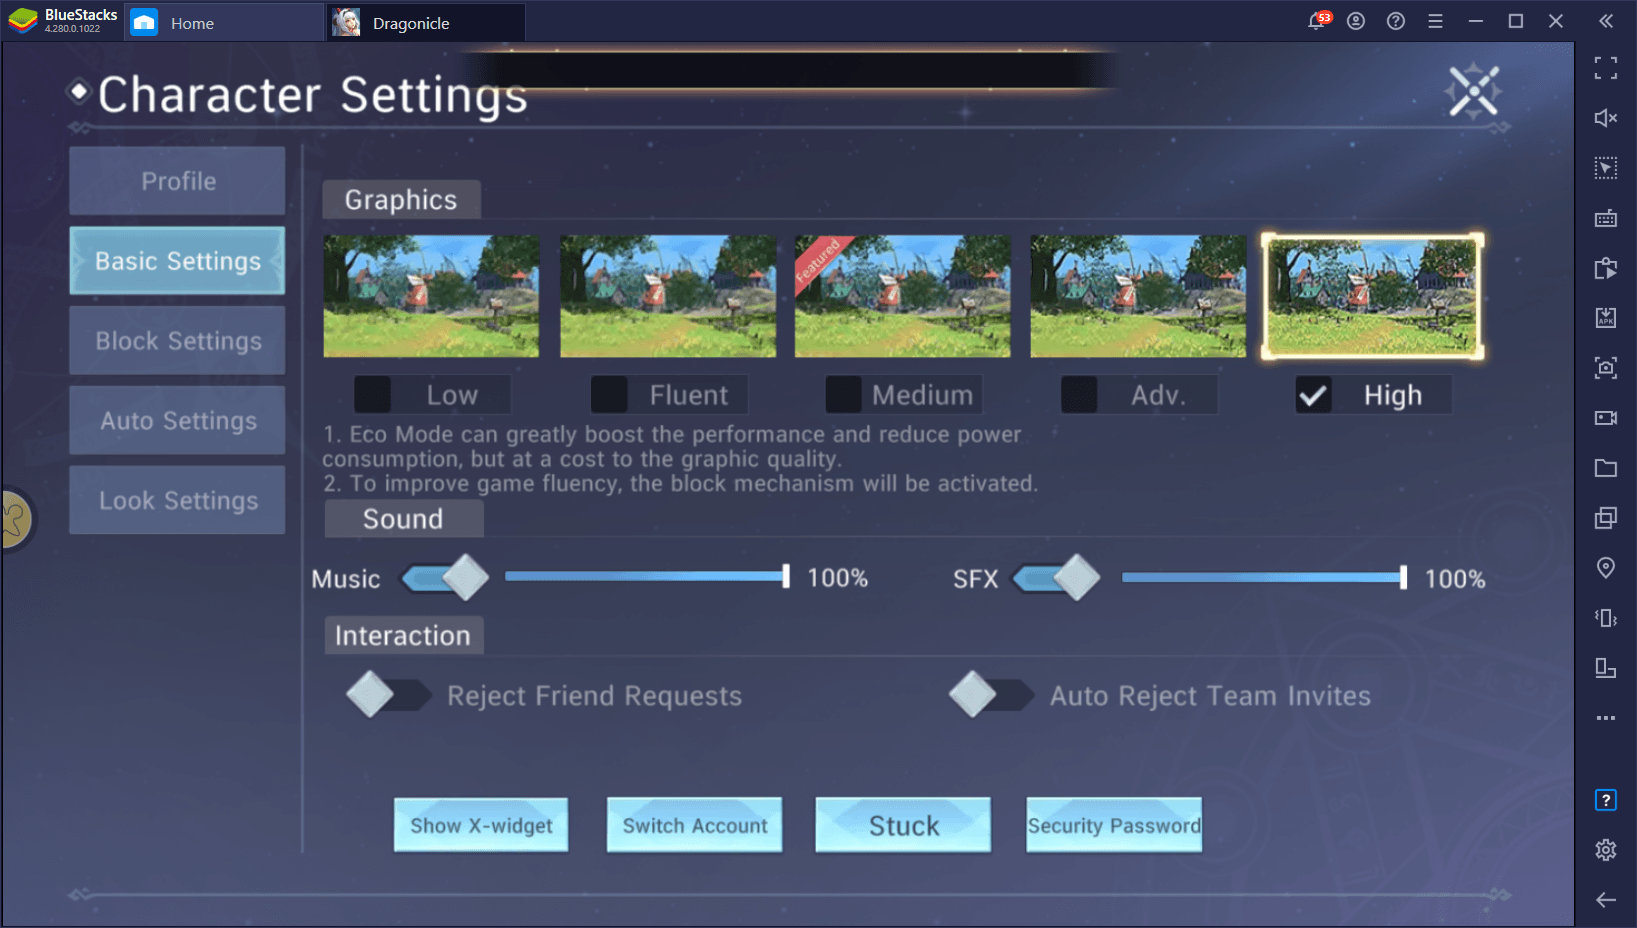 Dragonicle – Enhancing Your Gaming Experience with Our BlueStacks Tools